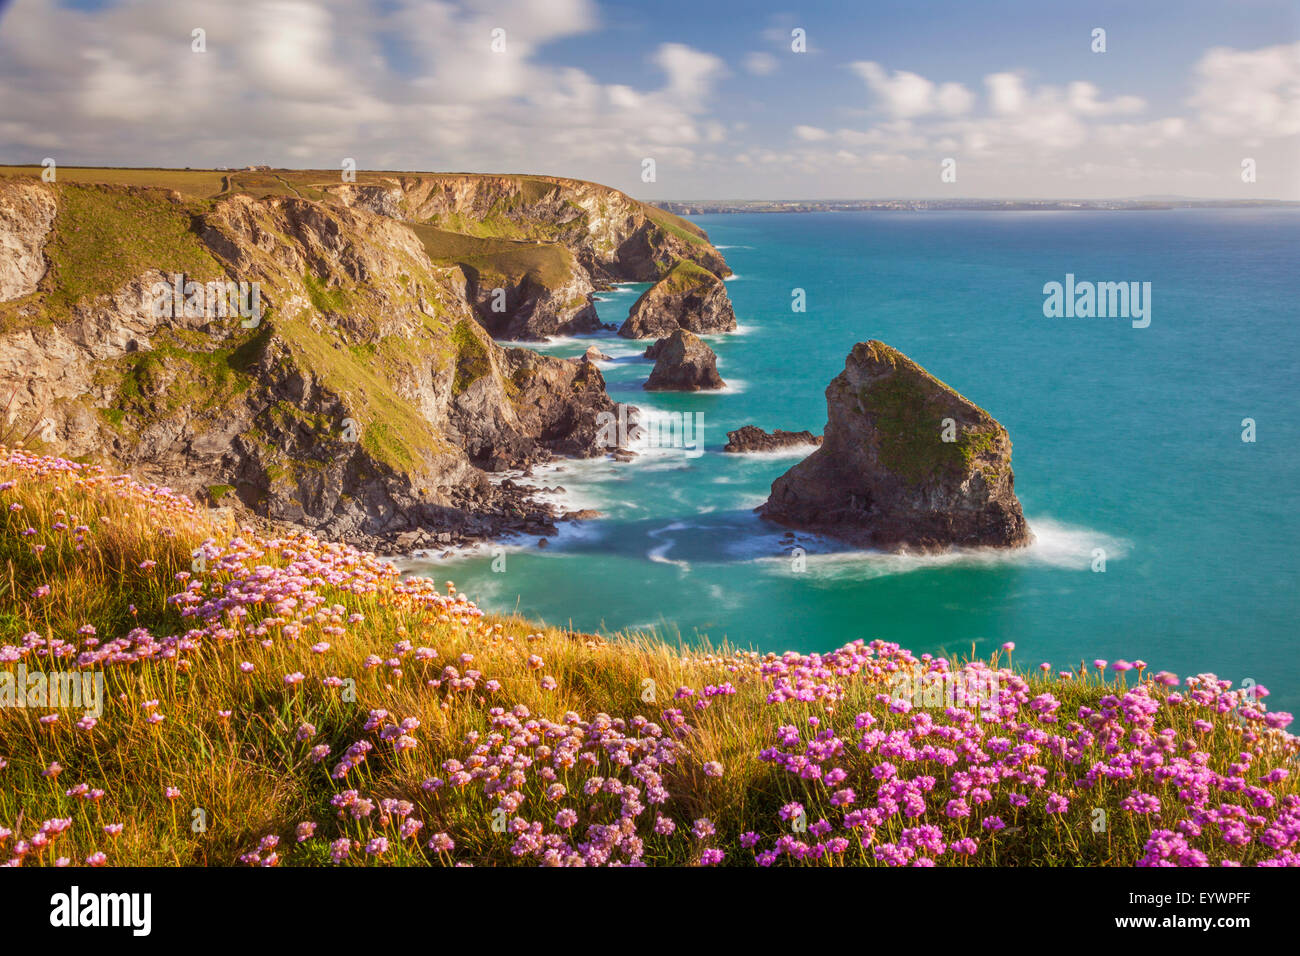 Arméria rose fleurs, Bedruthan Steps, Newquay, Cornwall, Angleterre, Royaume-Uni, Europe Photo Stock